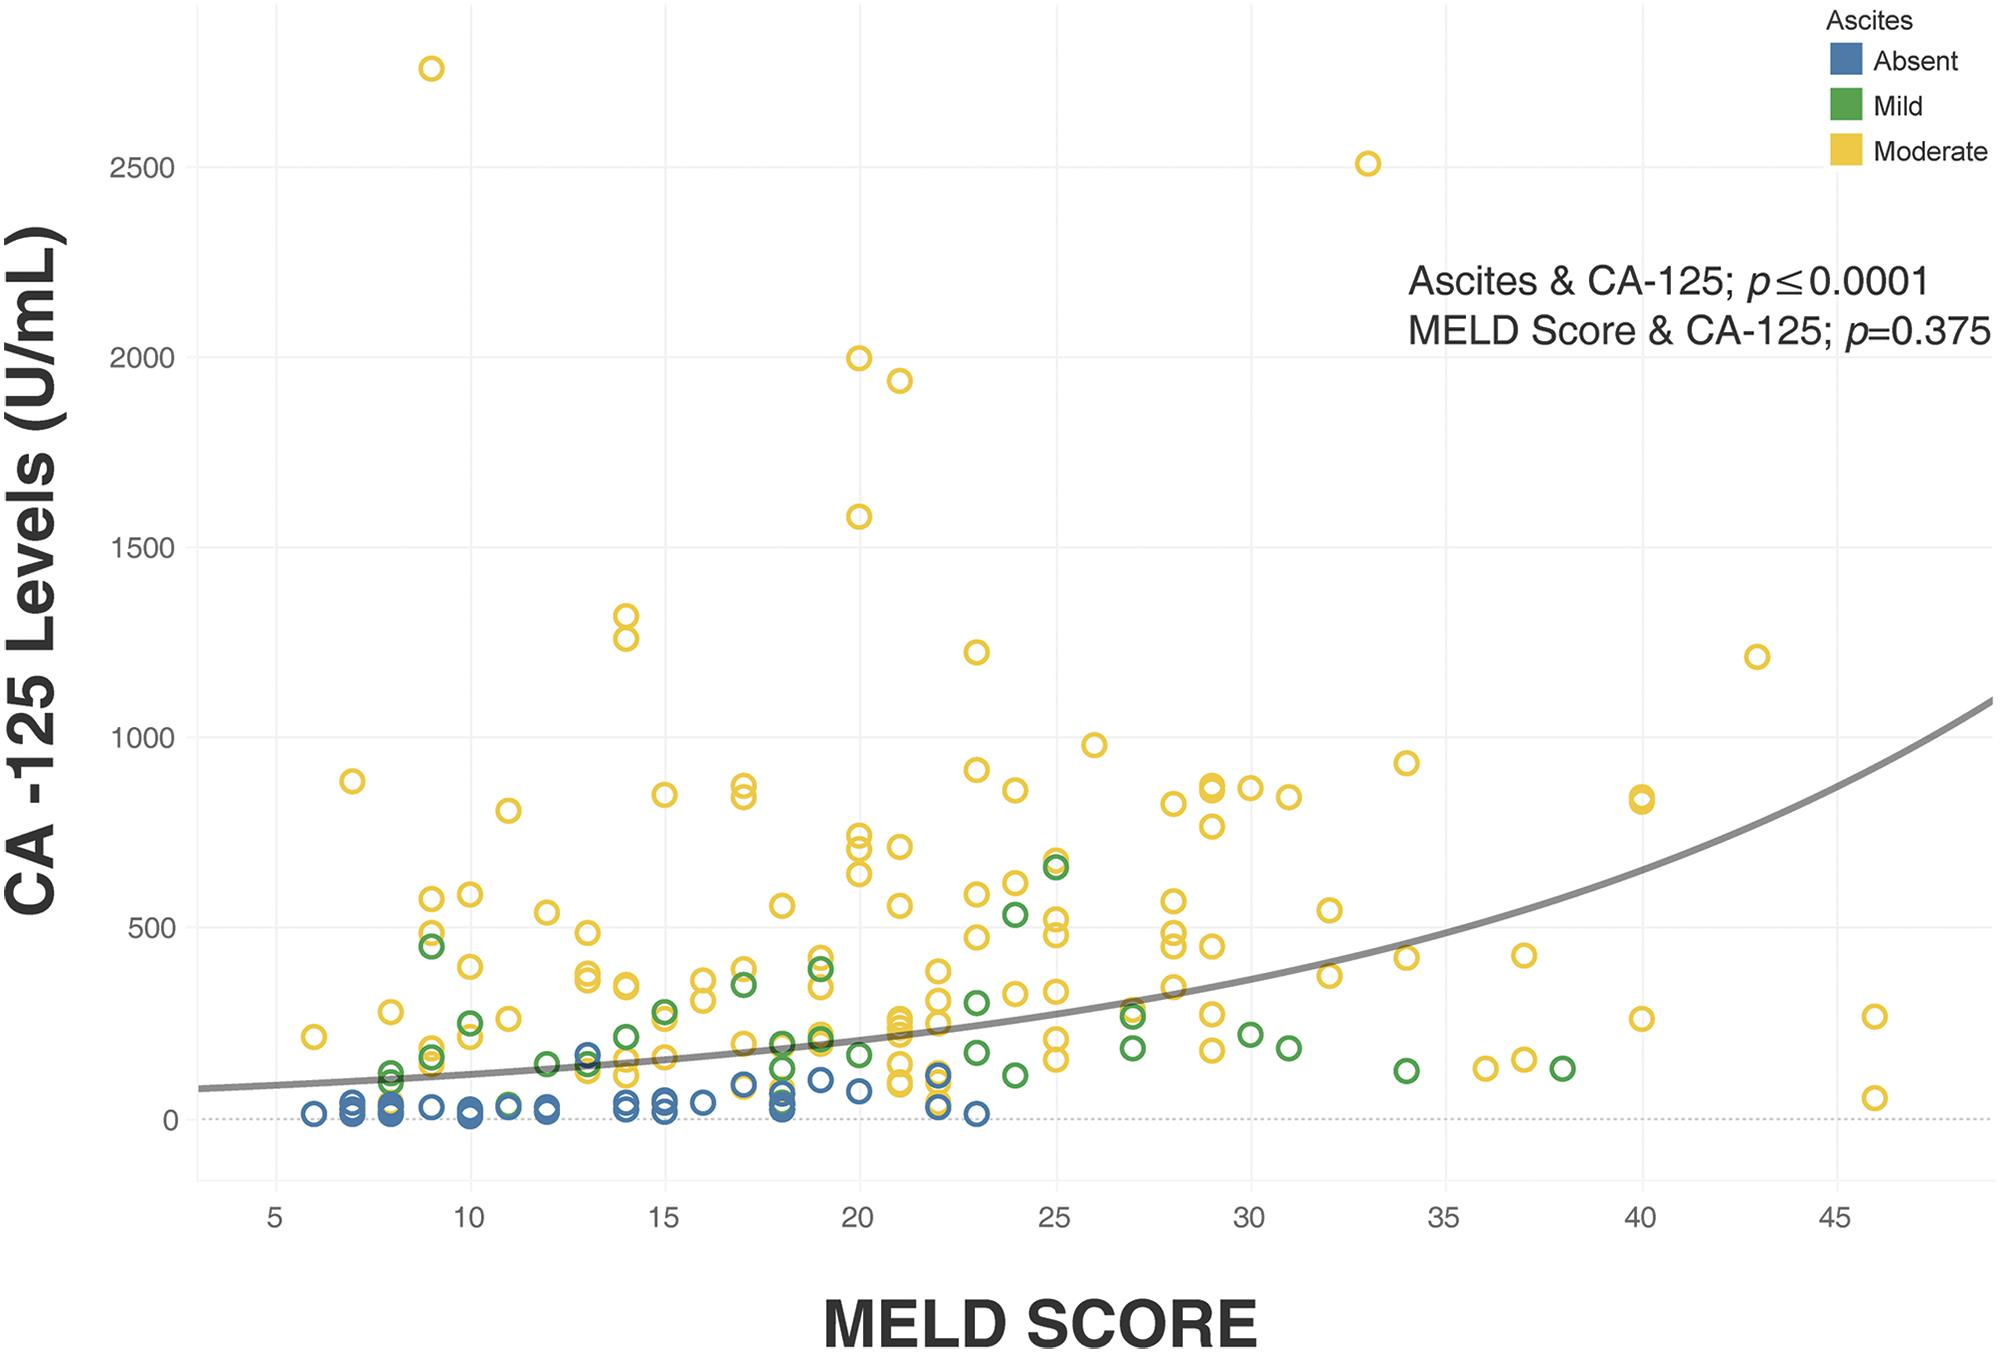 Linear regression analysis of CA-125 with MELD and degree of ascites.